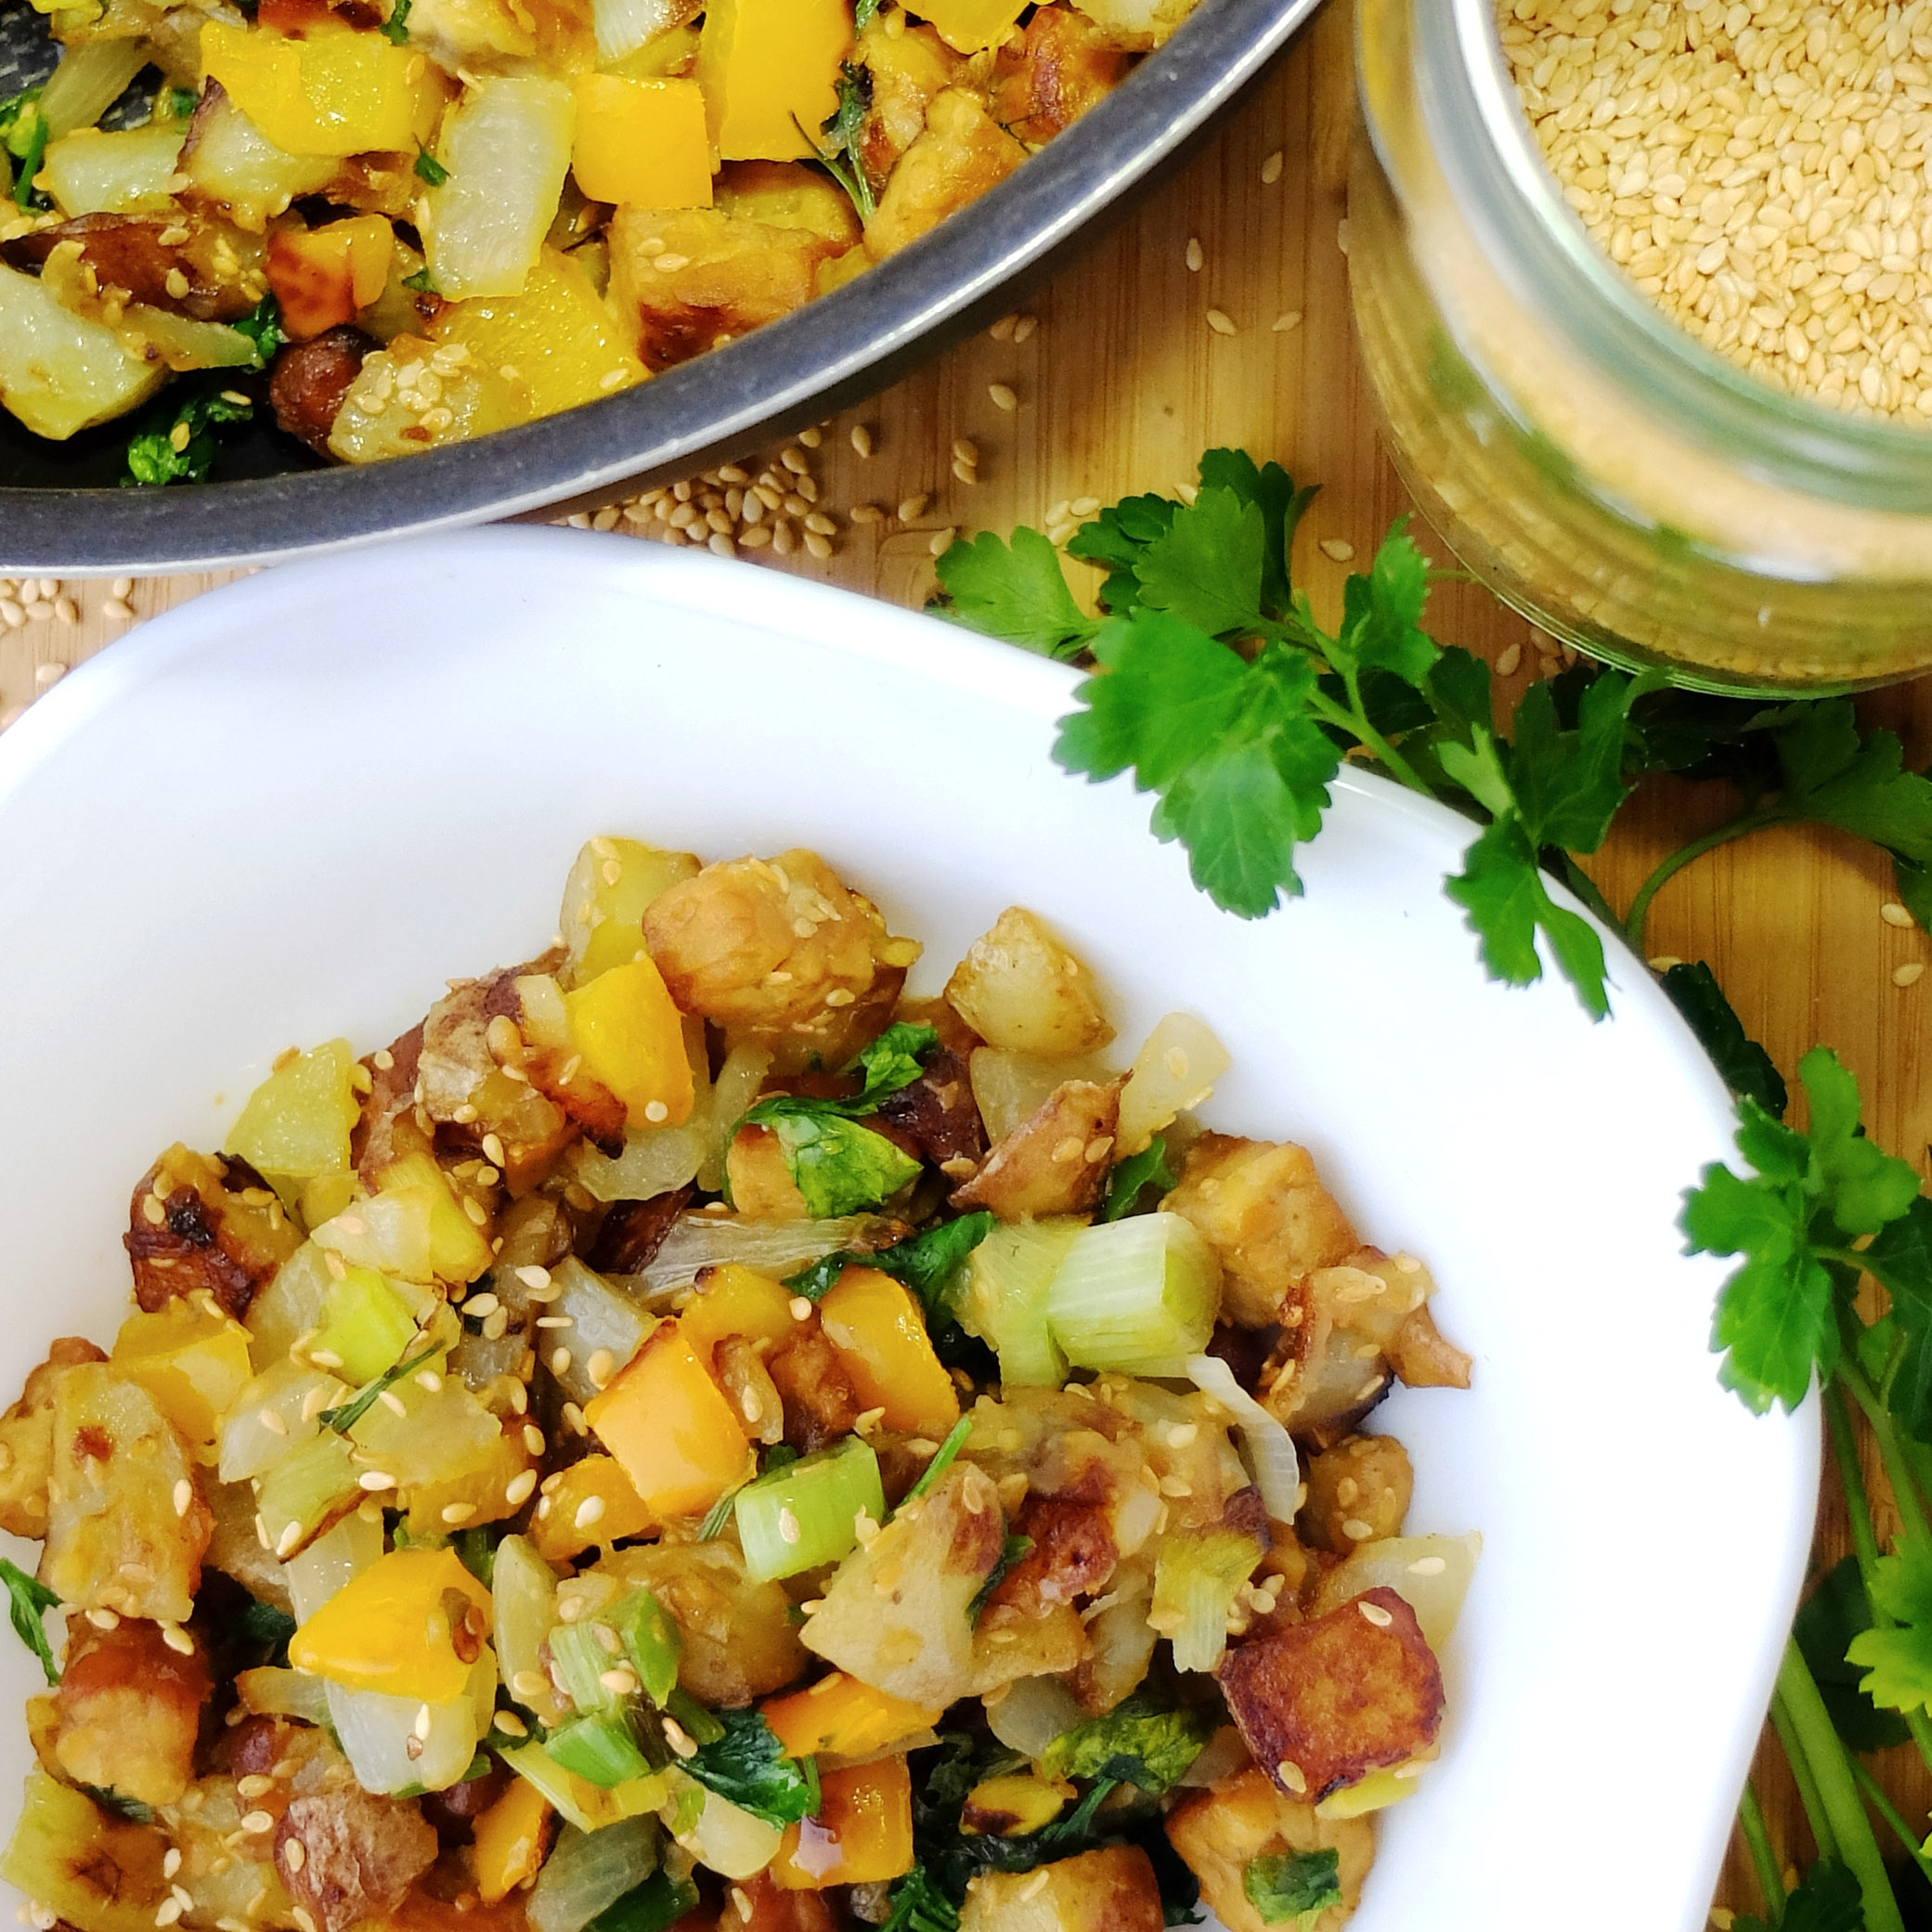 Fried Tempeh Hash - Brunch perfection